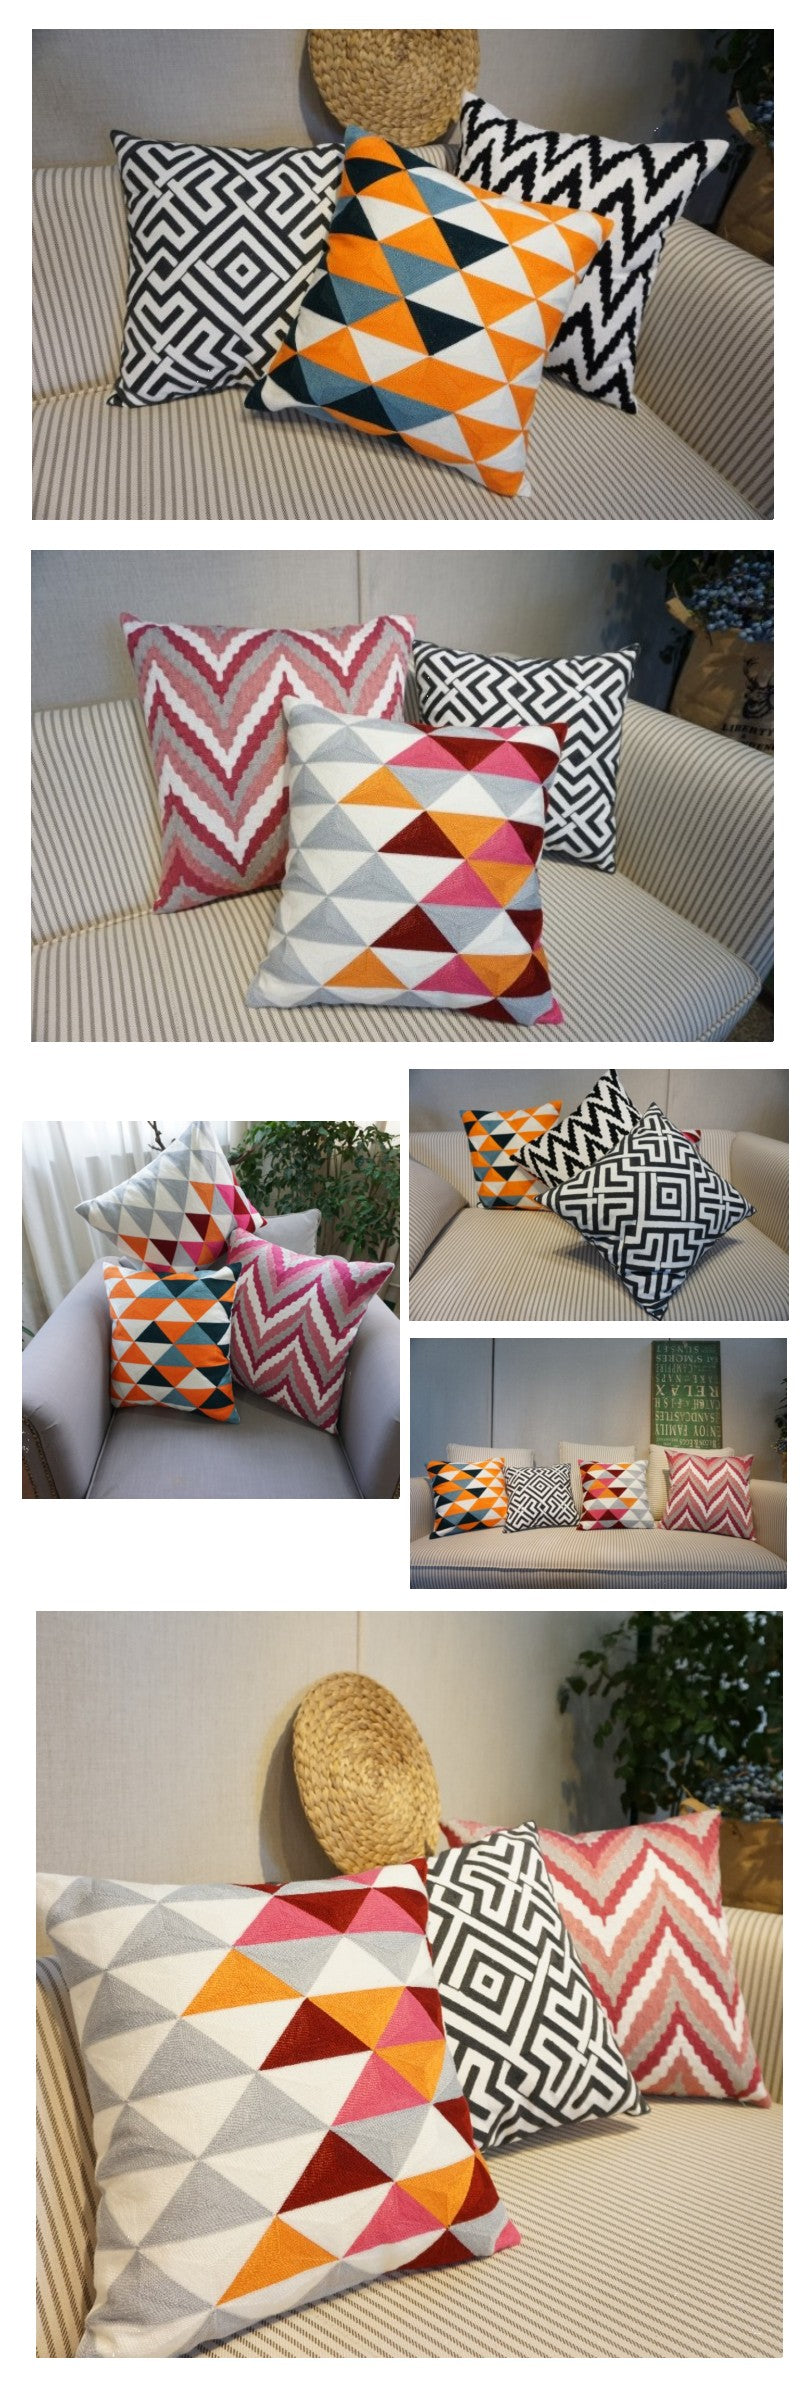 Decorative Cotton Throw Pillow, Cotton Pillow Cover, Sofa Pillows, Home Decoration